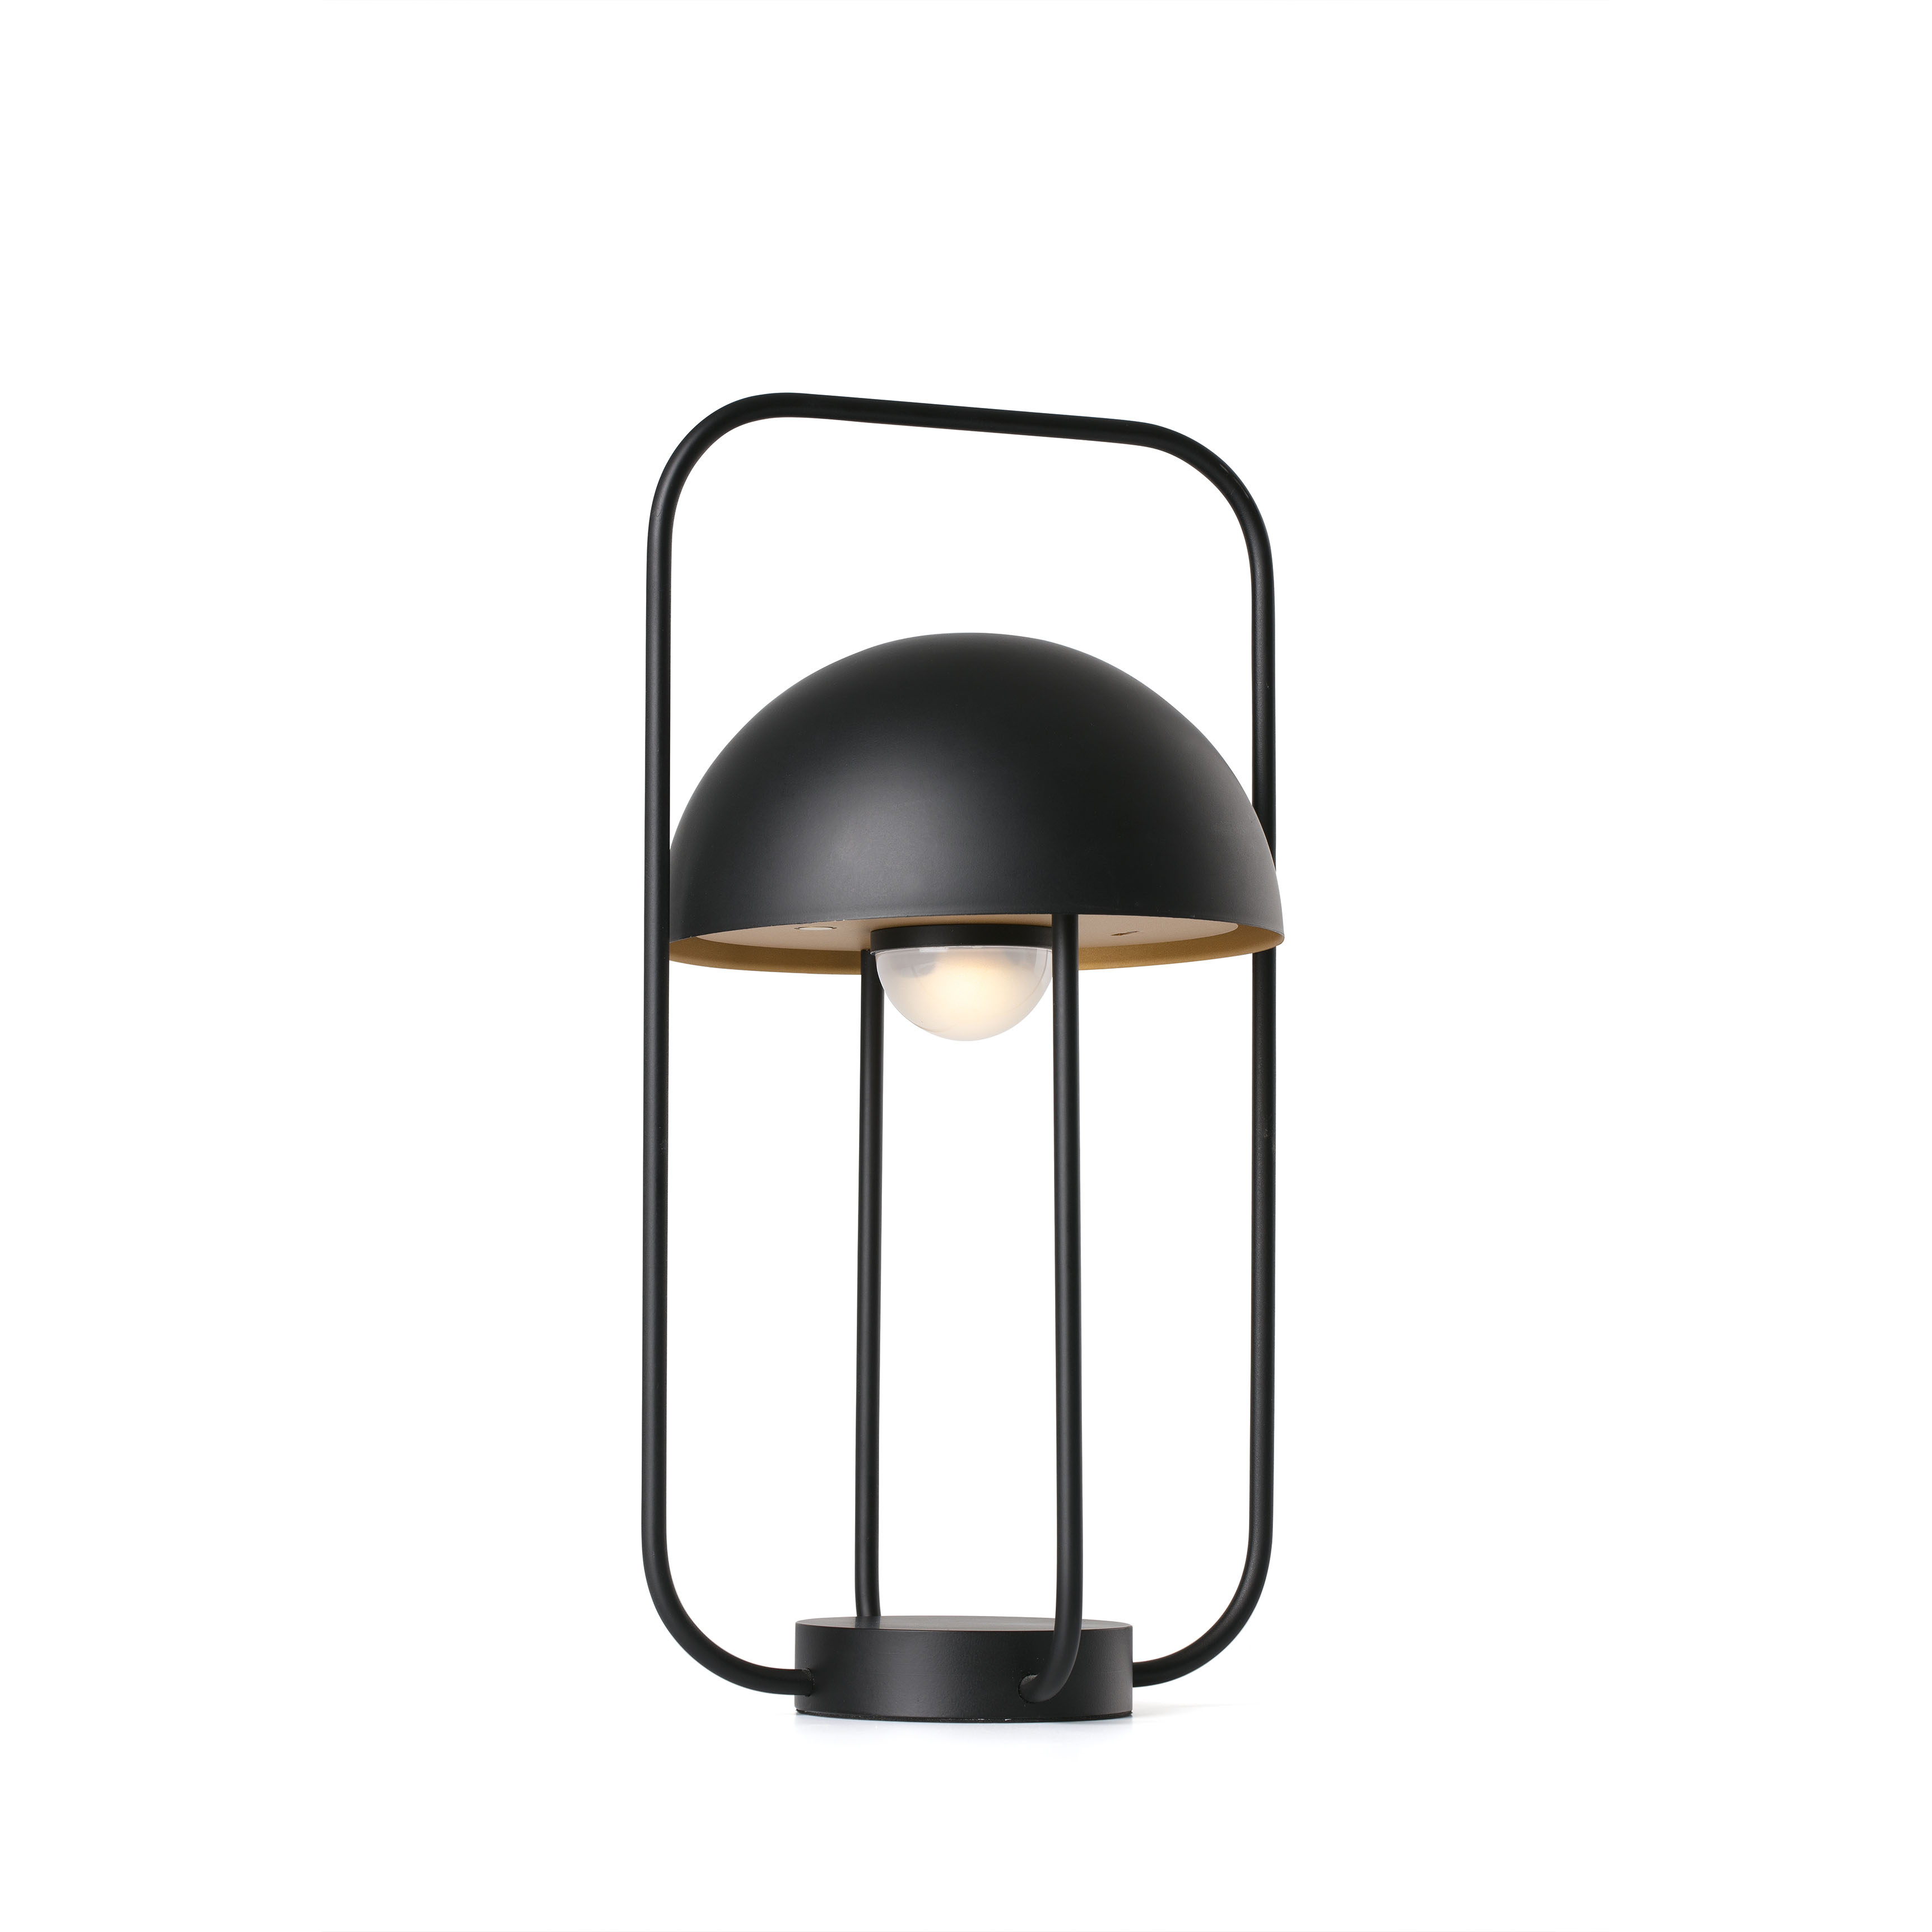 Lampa LED portabila JELLYFISH black / gold 24523